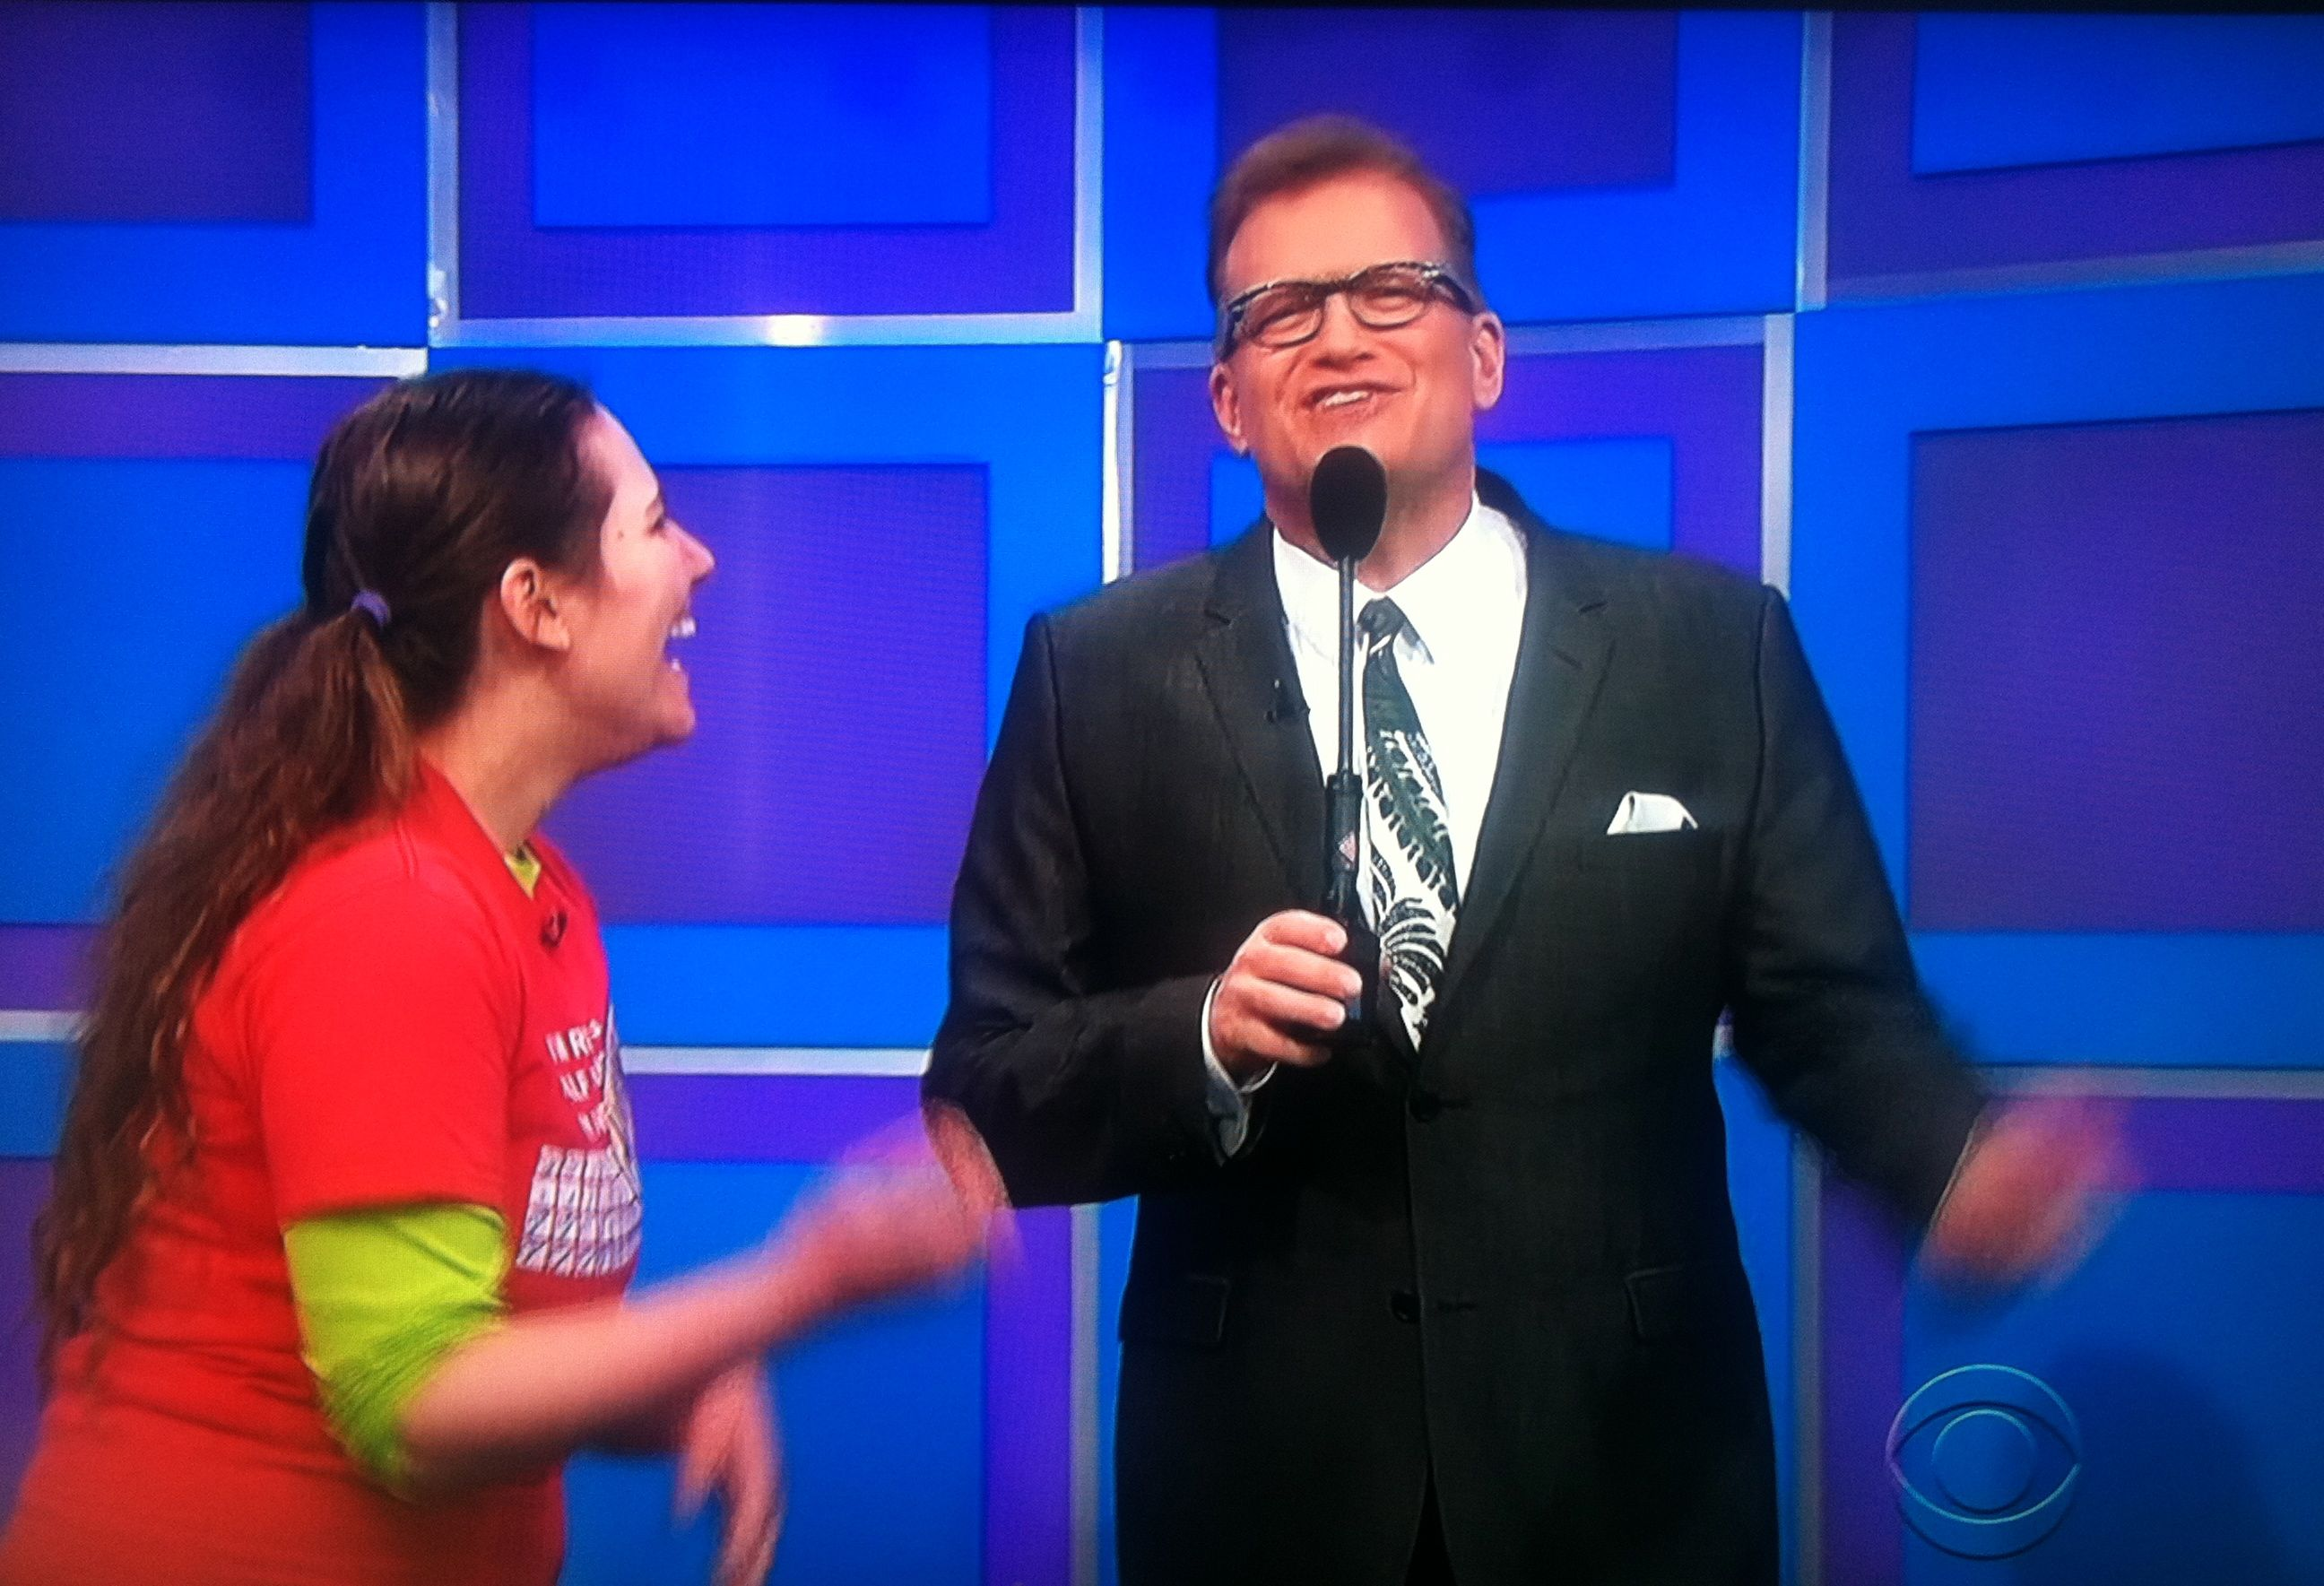 Drew Carey lightly making fun of Aurora De Lucia on The Price is Right - and she loves every second of it